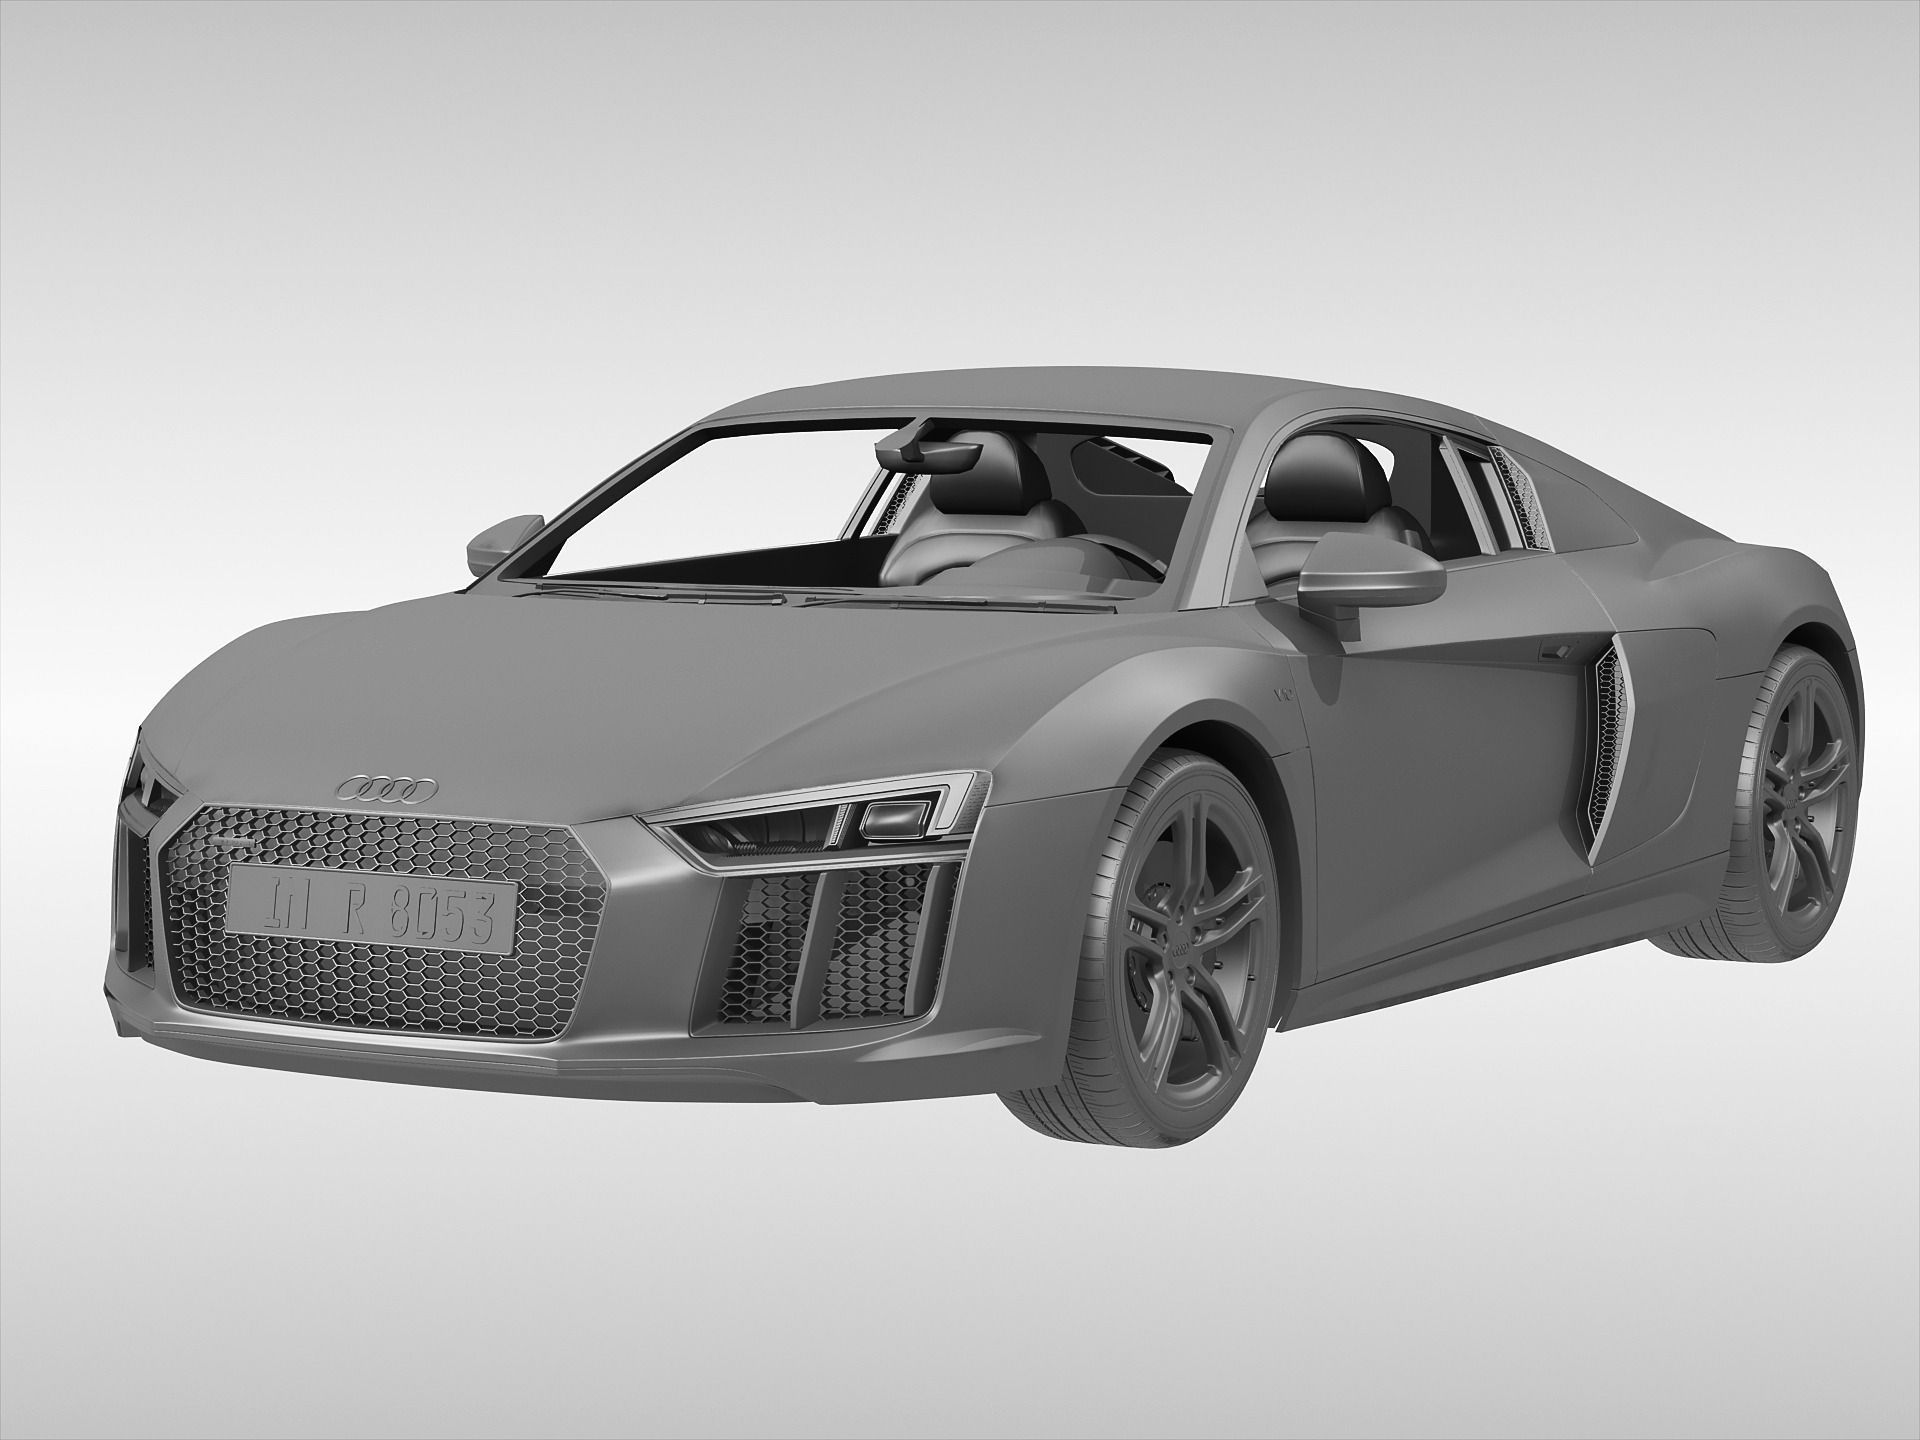 audi r8 v10 coupe 2016 3d model max obj 3ds fbx. Black Bedroom Furniture Sets. Home Design Ideas